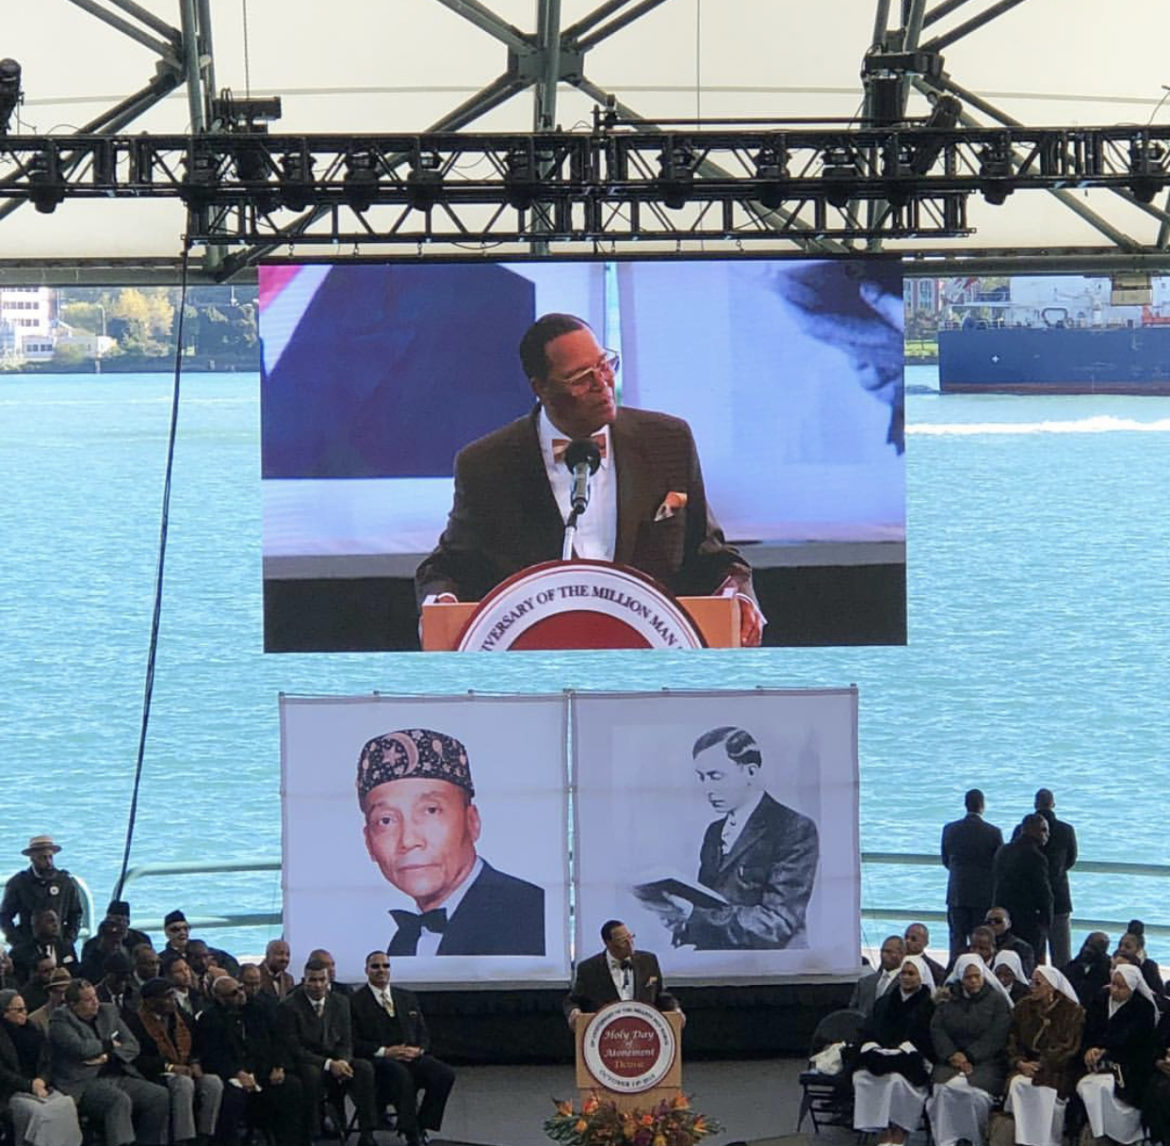 FULL REPLAY: Farrakhan Speaks At The Aretha Franklin Amphitheater In Detroit for the 23rd Anniversary of The Million Man March